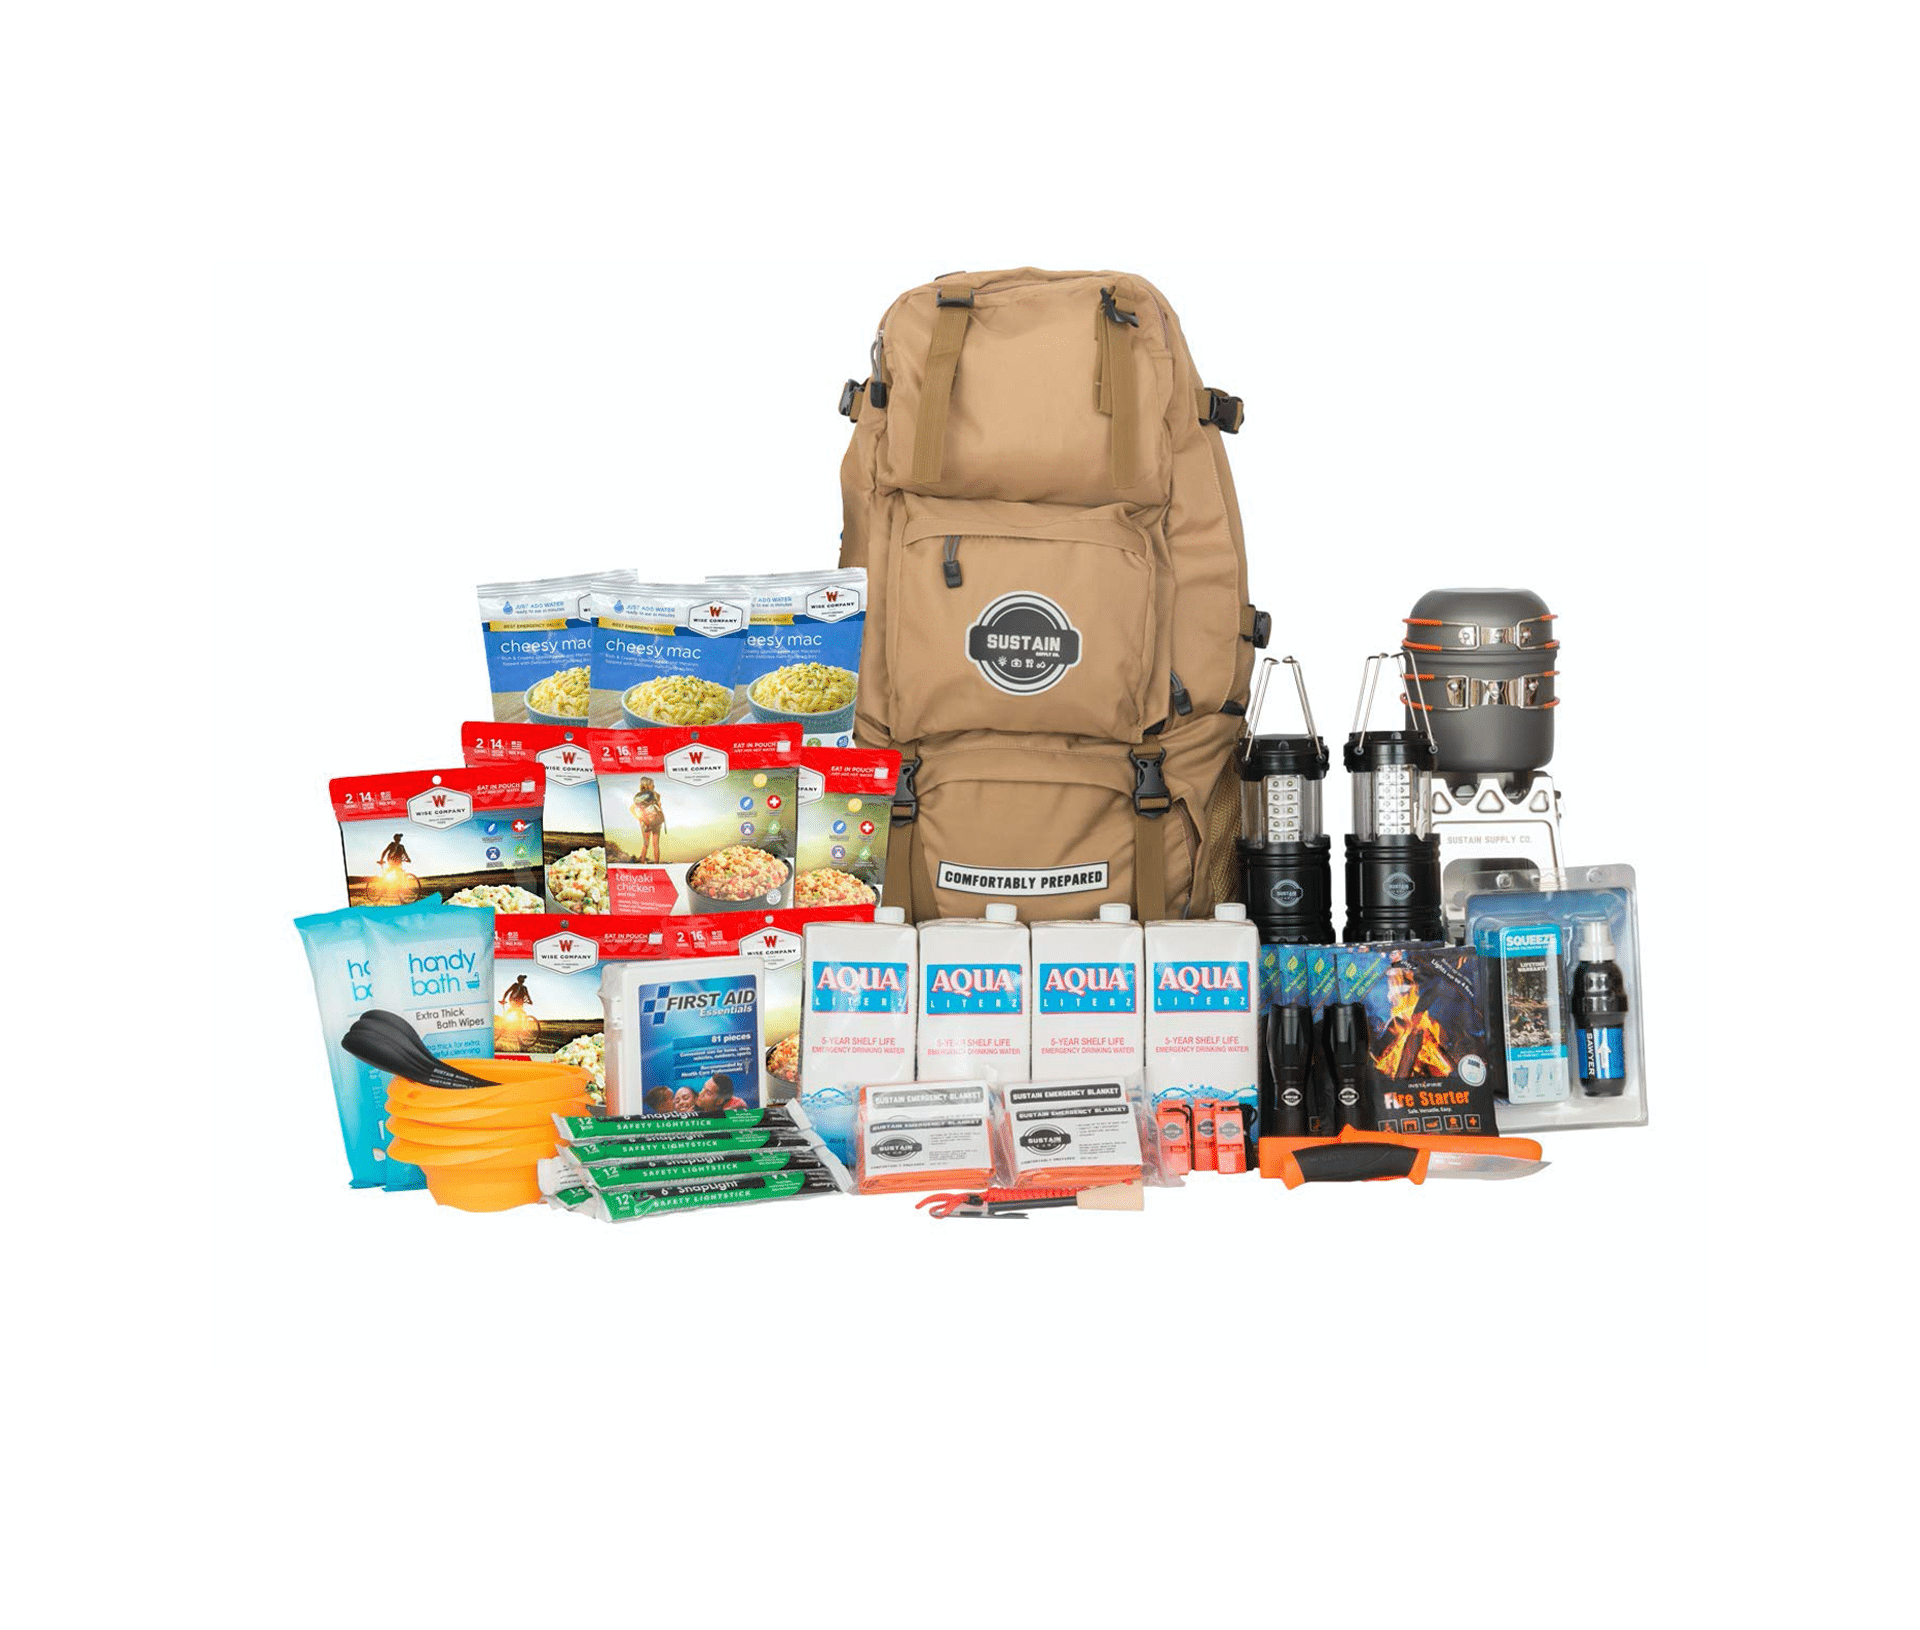 Sustain Supply Co. Emergency Survival Kit